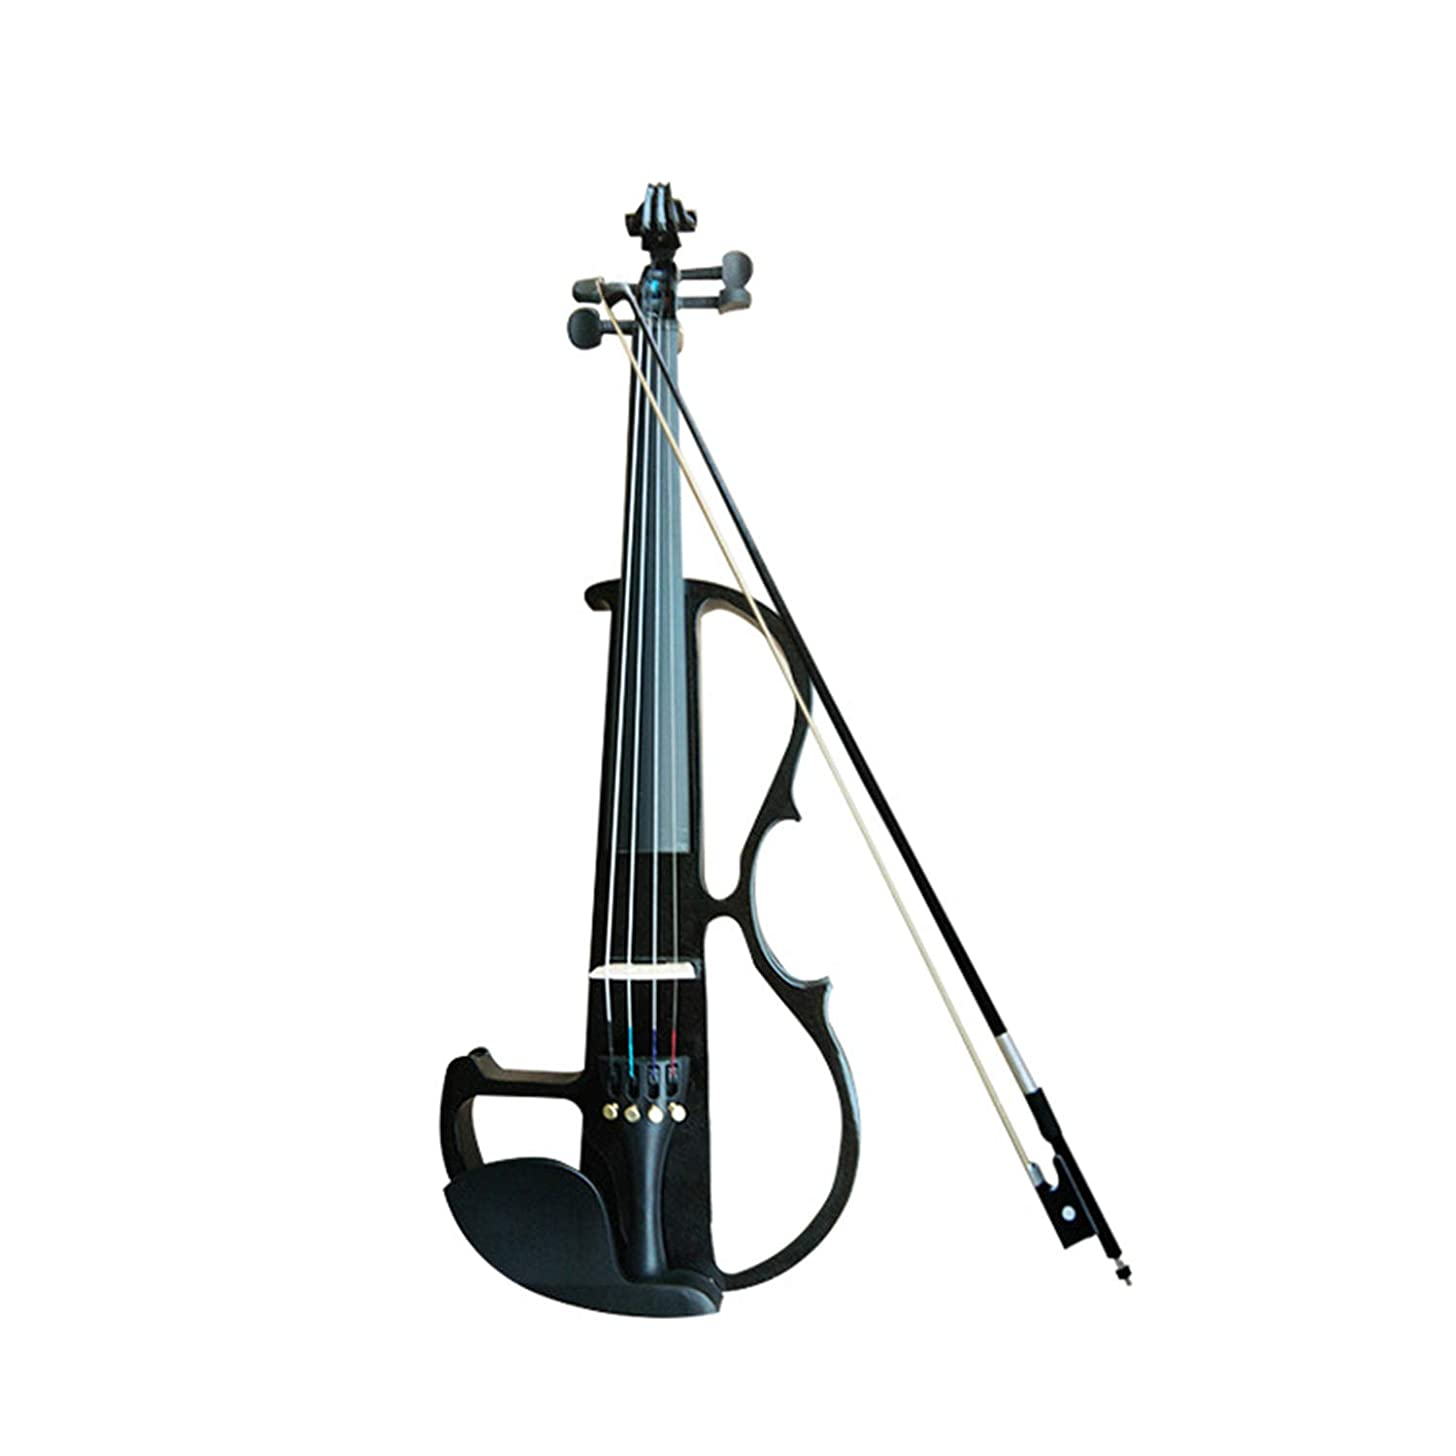 Xch Full Size 4/4 Acoustic Electric Violin Fiddle Solid Wood Body Ebony Fingerboard Pegs Chin Rest Tailpiece with Bow Hard Case Tuner,Black